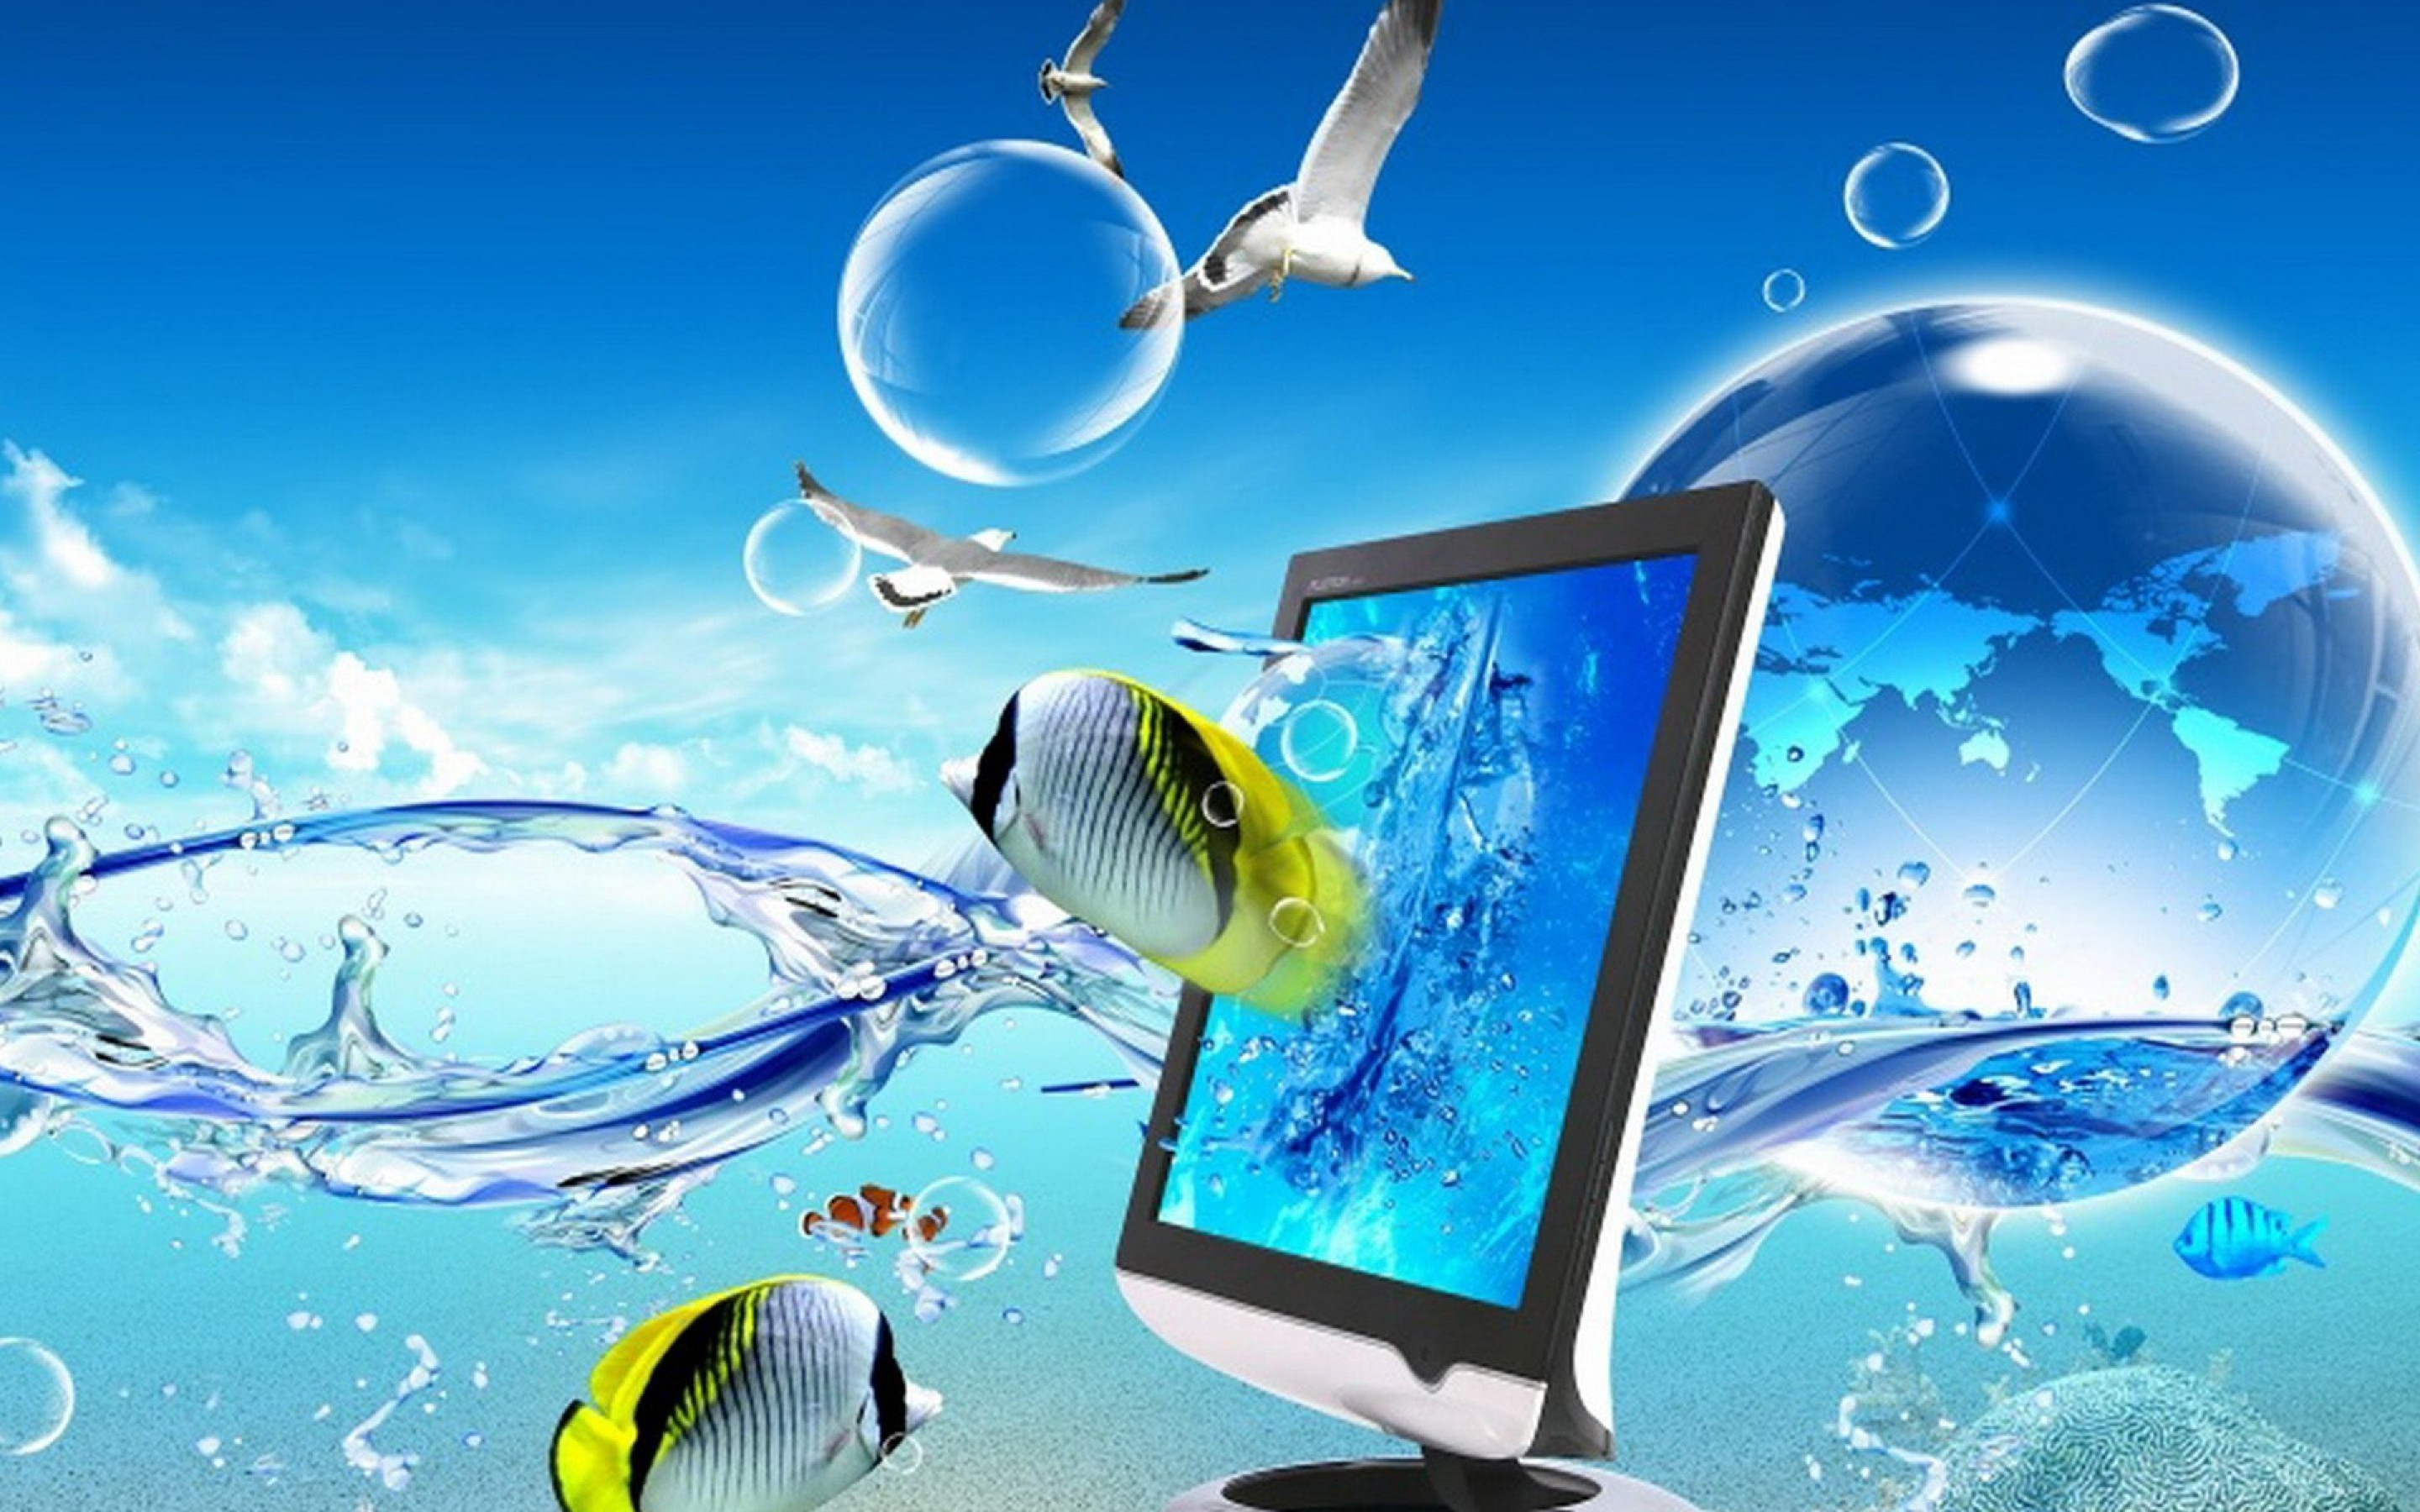 … live wallpapers 3d best images collections hd for gadget windows …